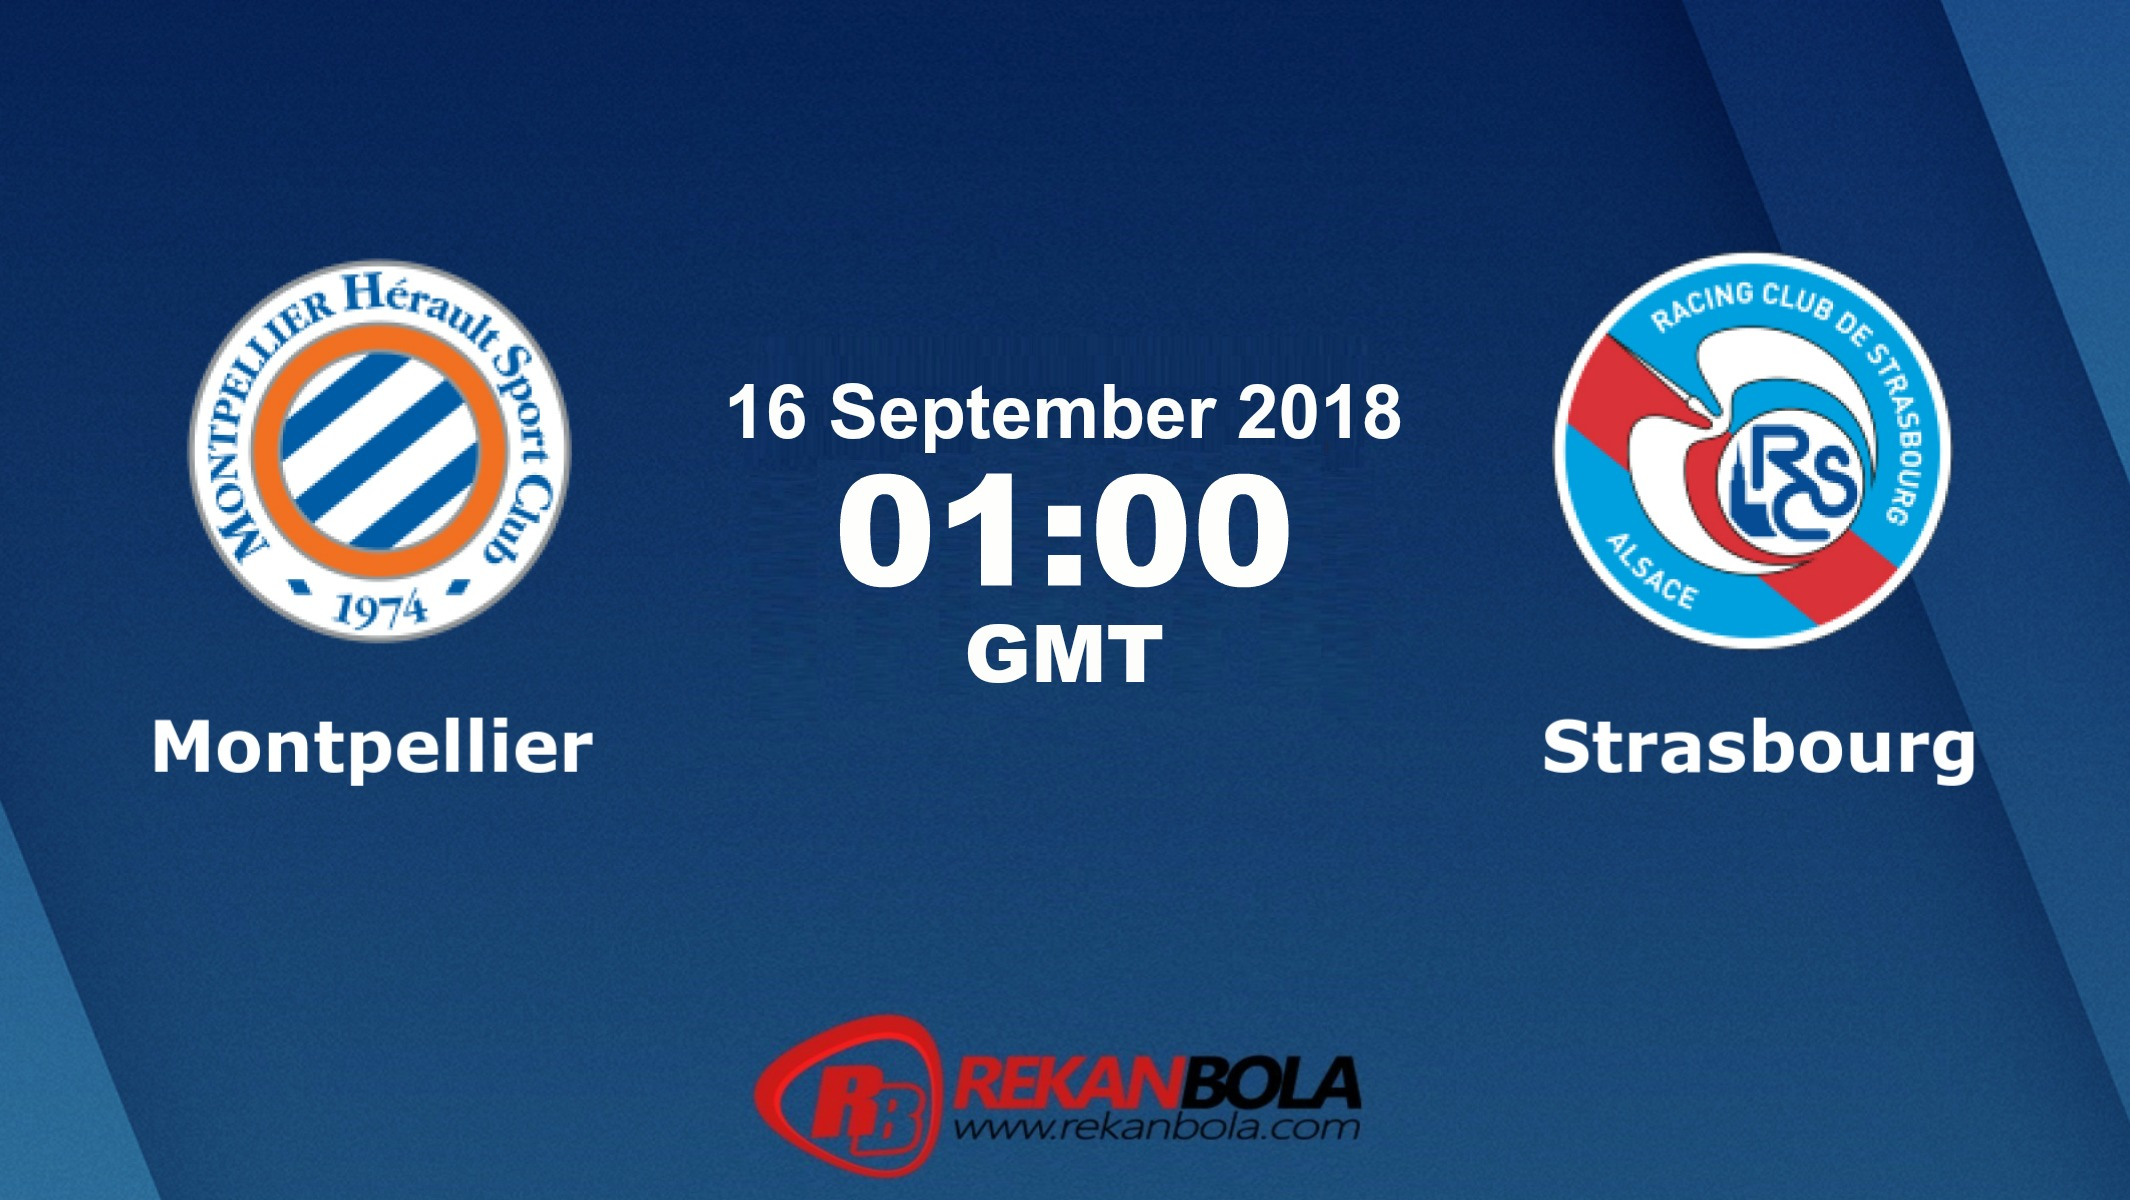 Nonton Siaran Live Streaming Montpellier Vs Strasbourg 16 September 2018